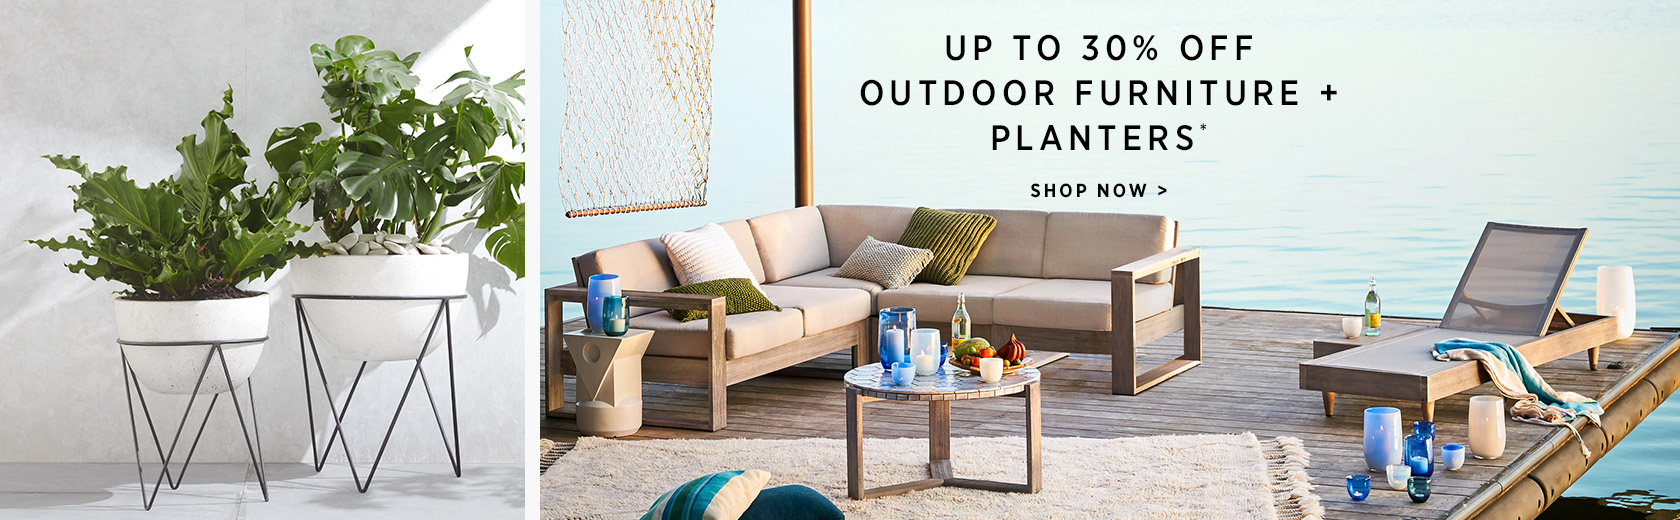 Up To 30% Off Outdoor Furniture